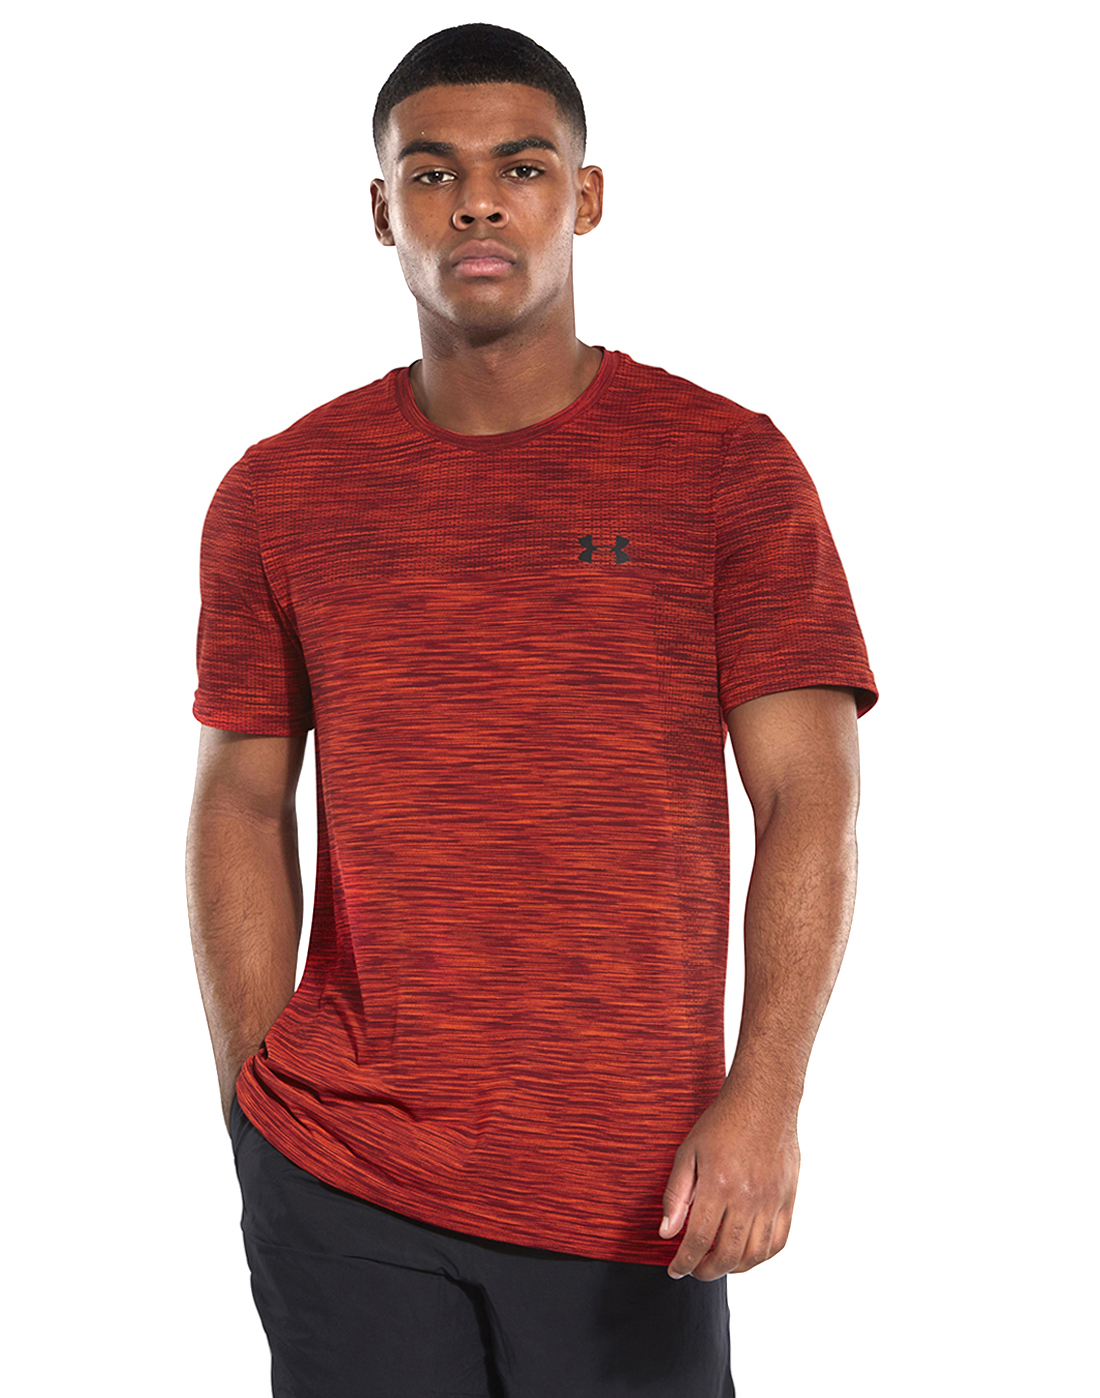 010abdc05d Men's Red Under Armour Seamless Gym T-Shirt | Life Style Sports